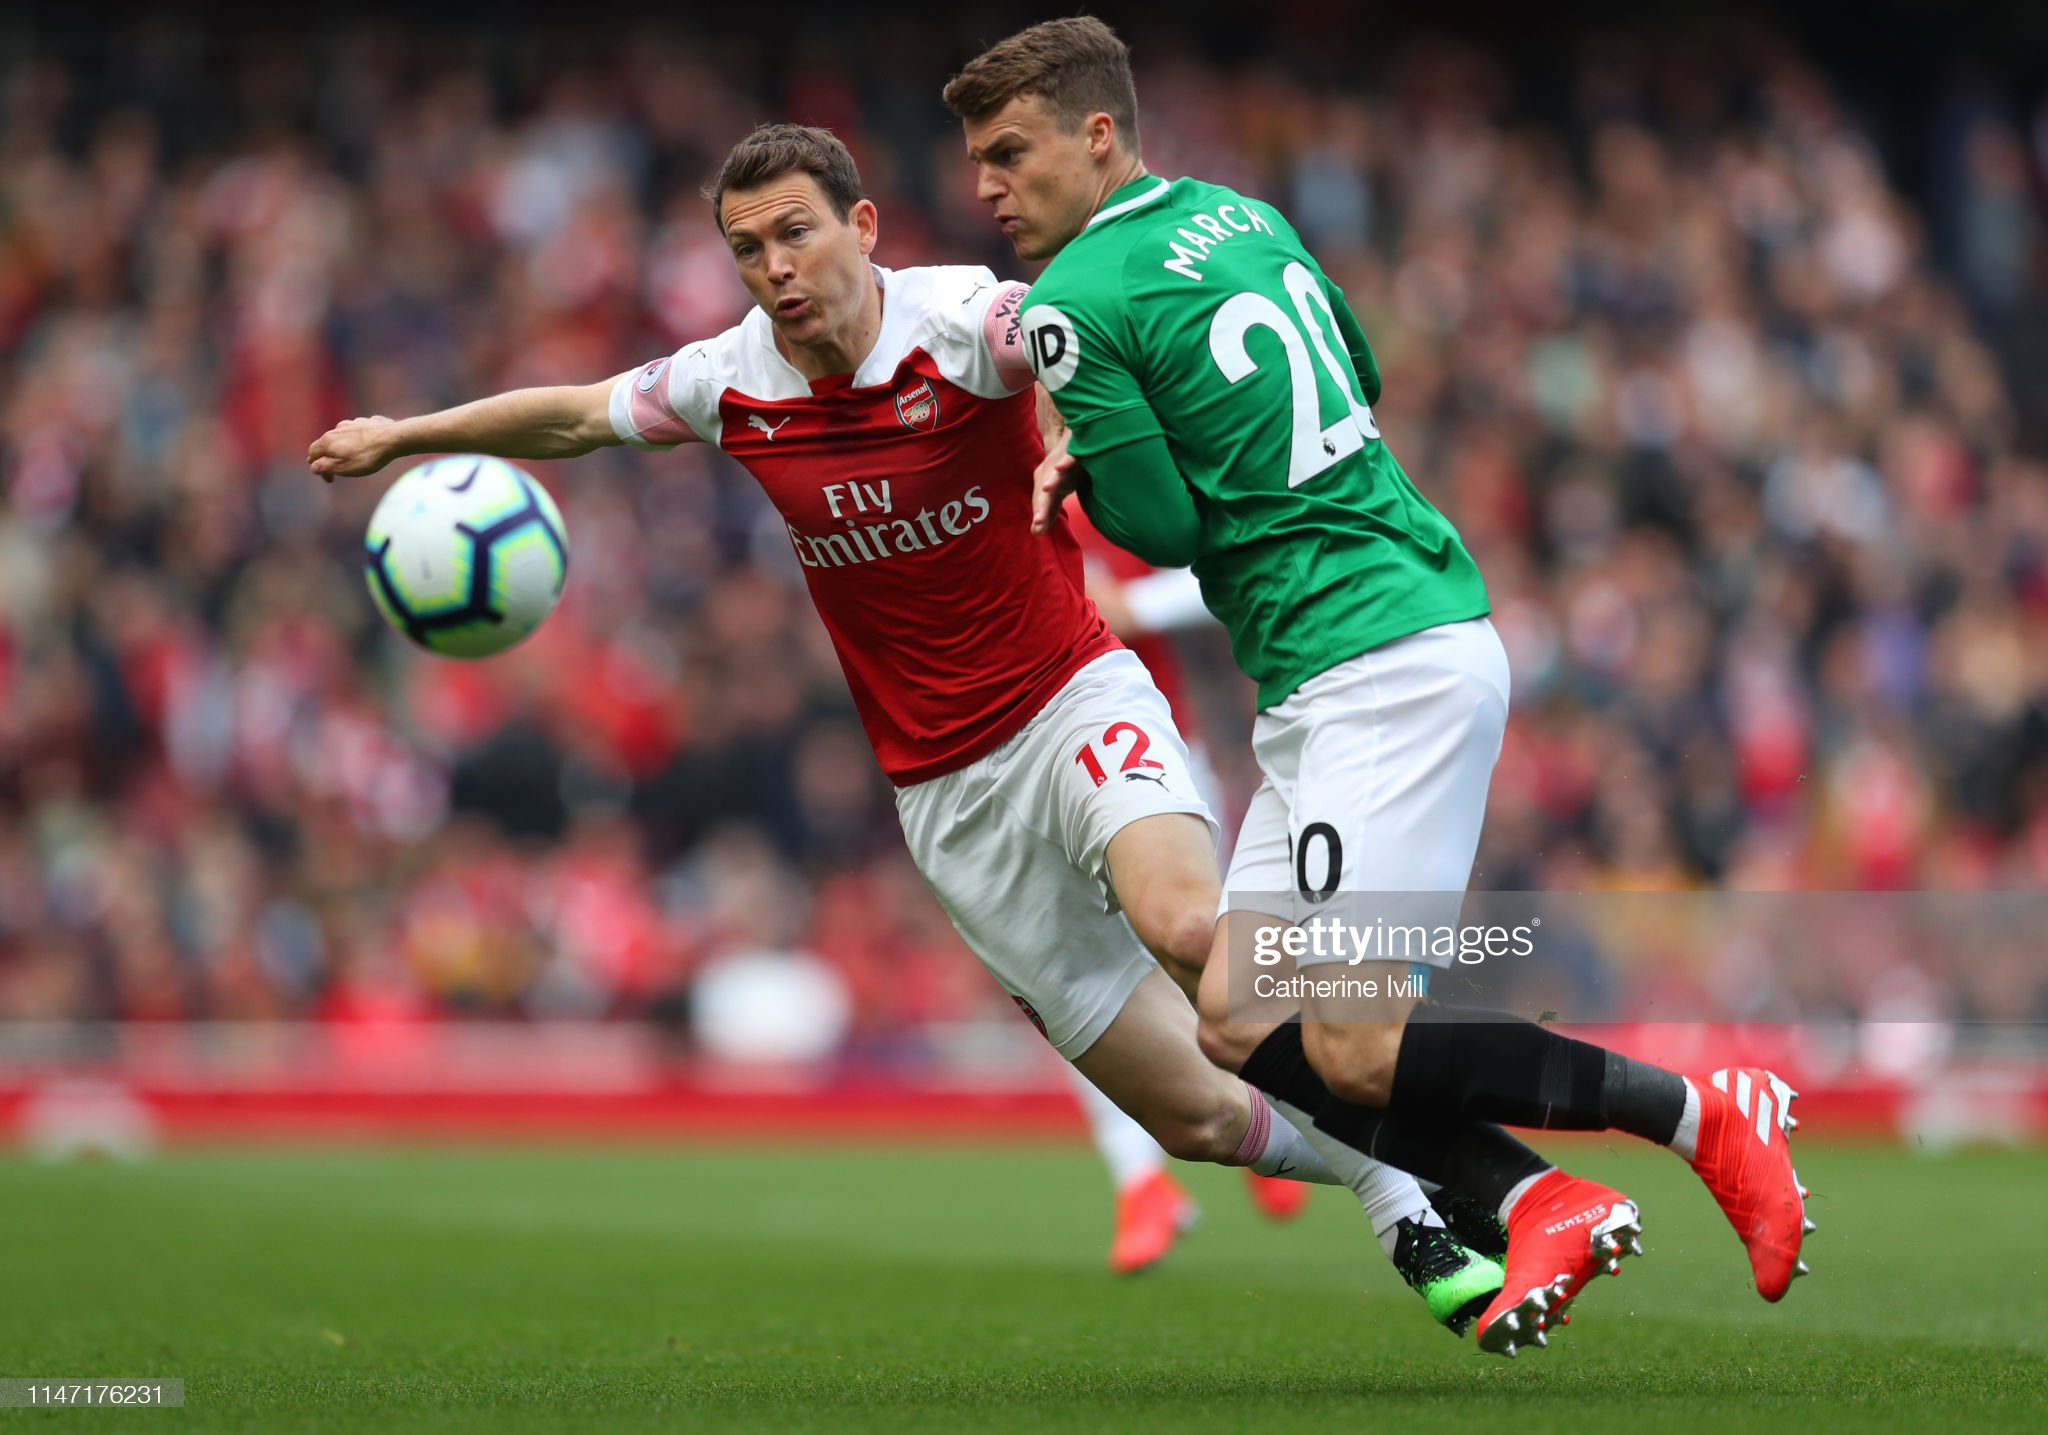 Arsenal v Brighton preview, prediction and odds